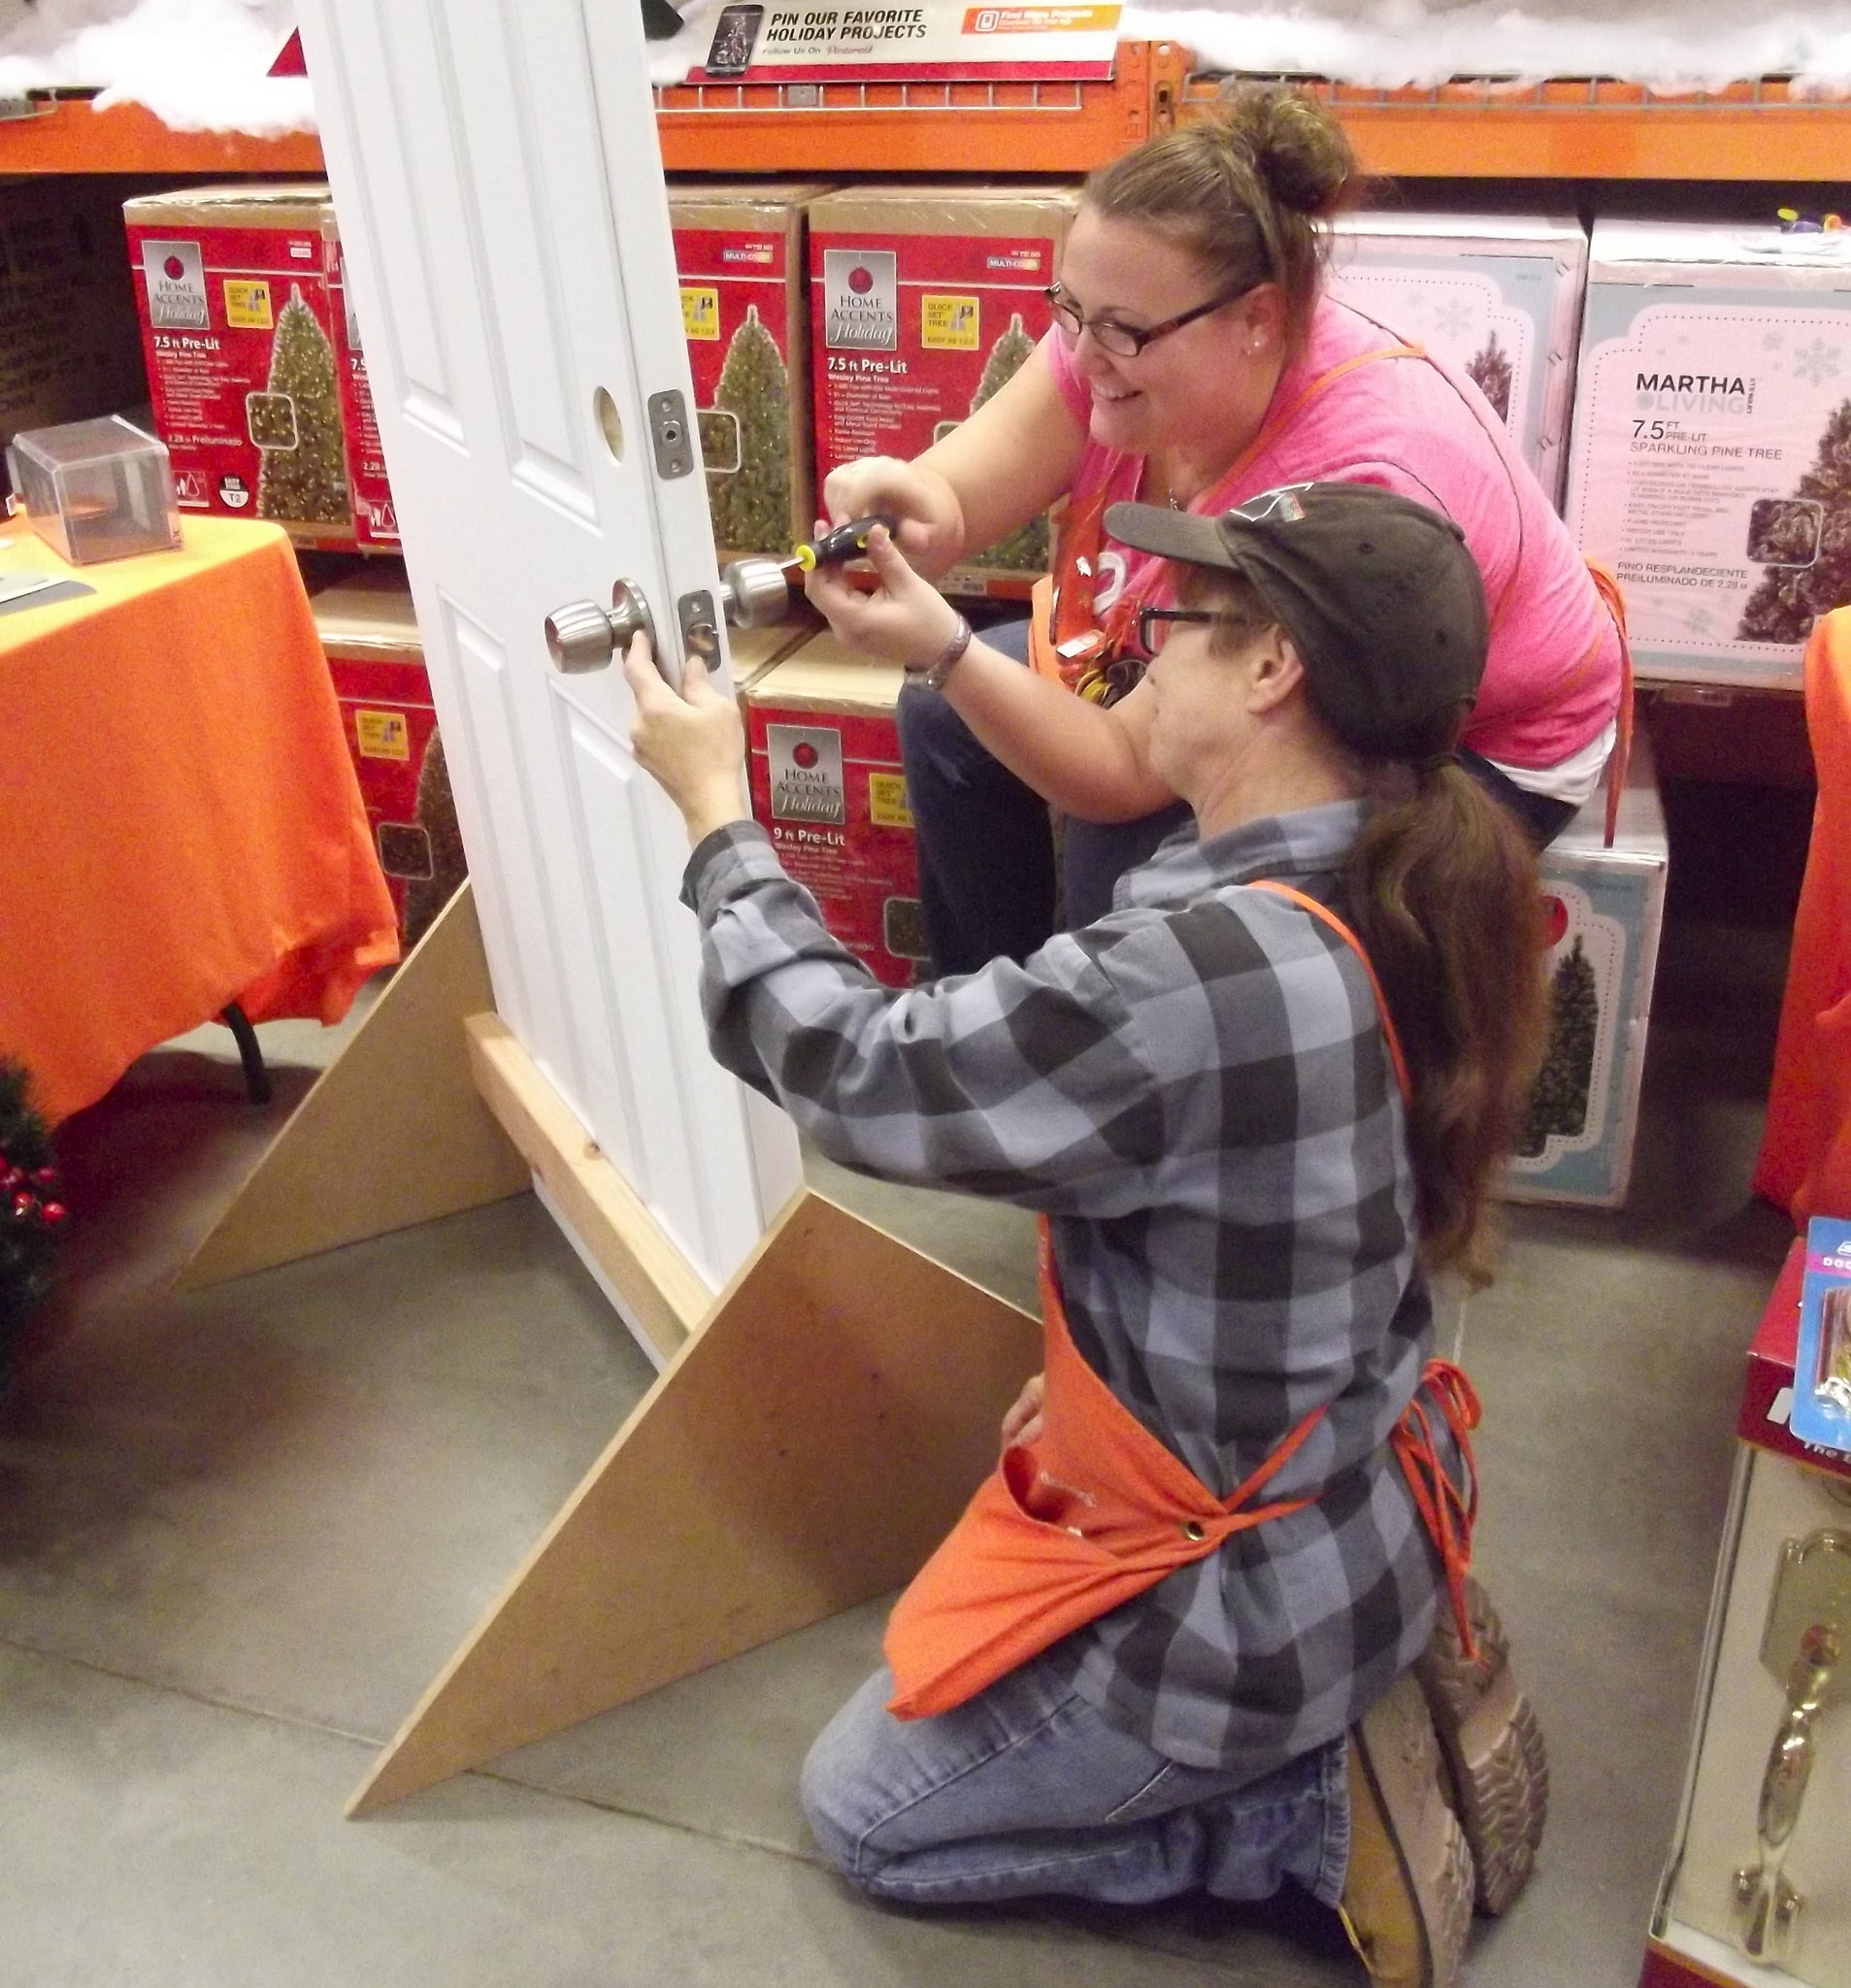 Home Depot offers Do It Herself classes for women